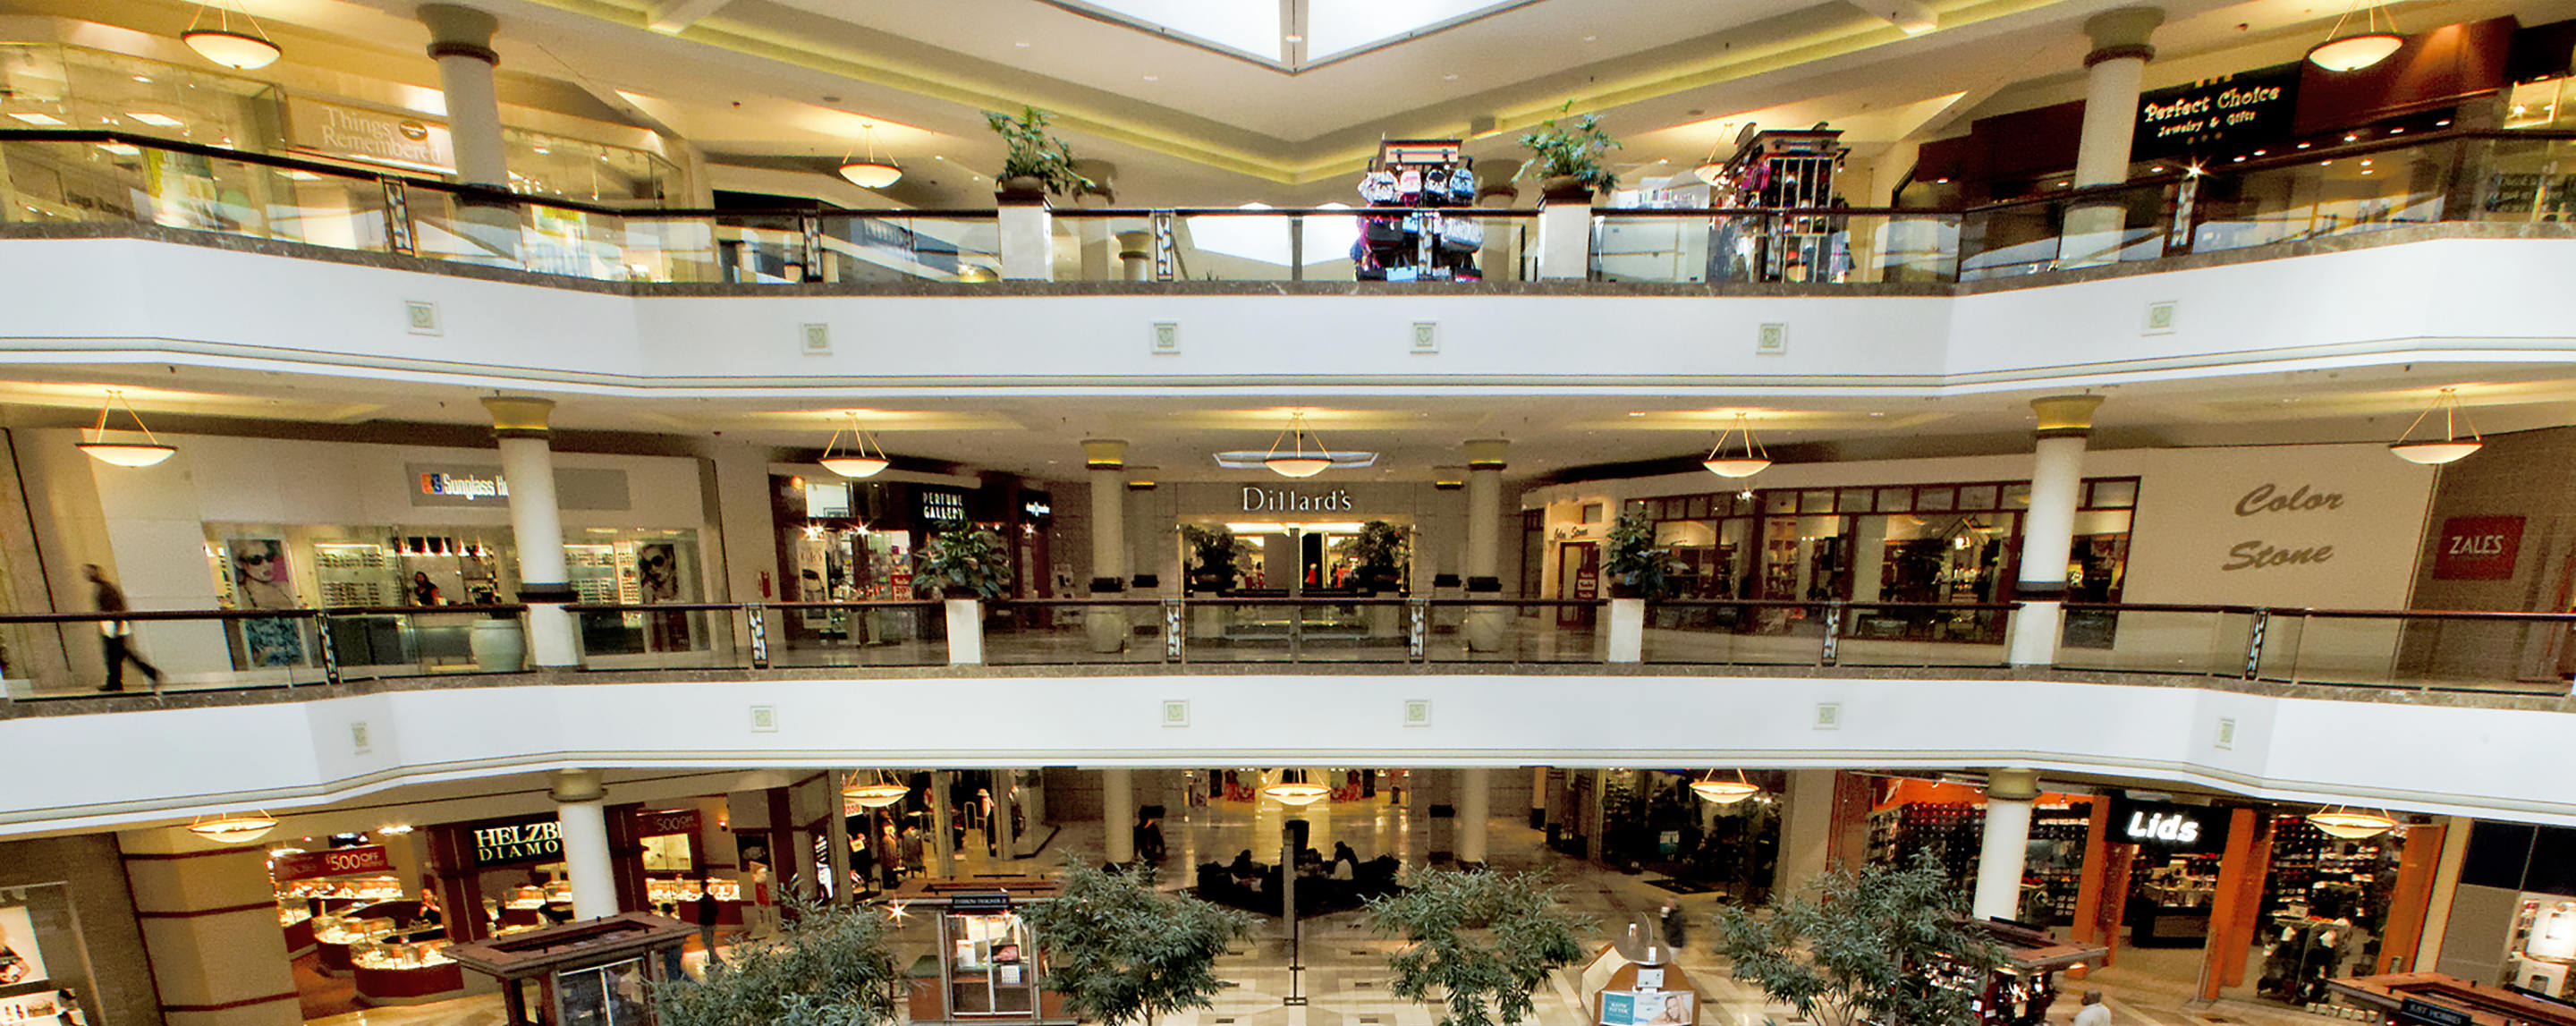 Stores such as Dillard's, Lids, and Zales can be seen on the halls of a three storied shopping mall.